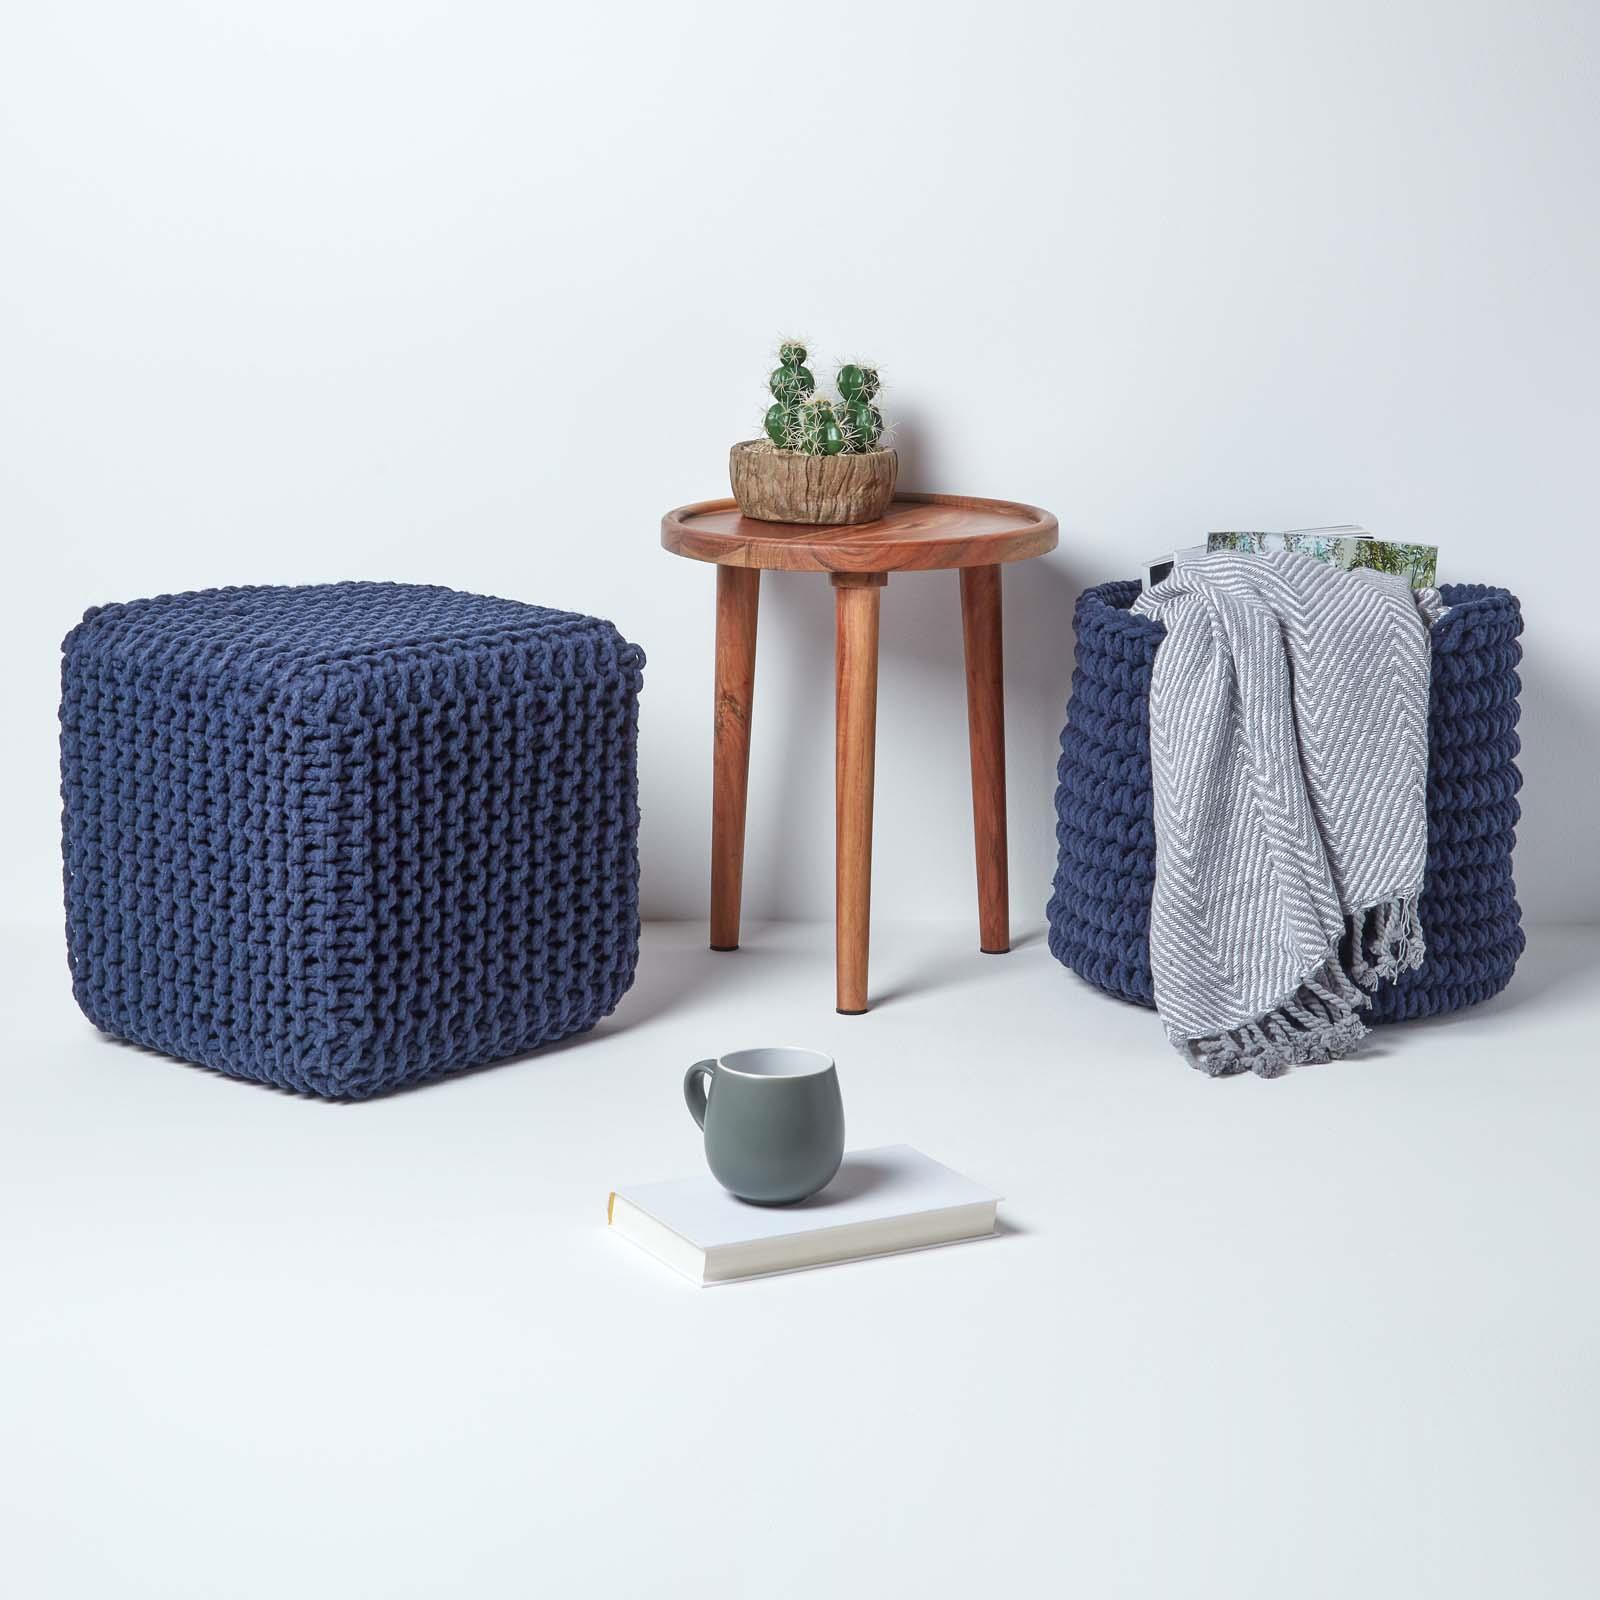 Hand-Knitted-100-Cotton-Pouffes-Round-Sphere-Or-Cube-Square-Chunky-Footstools thumbnail 114